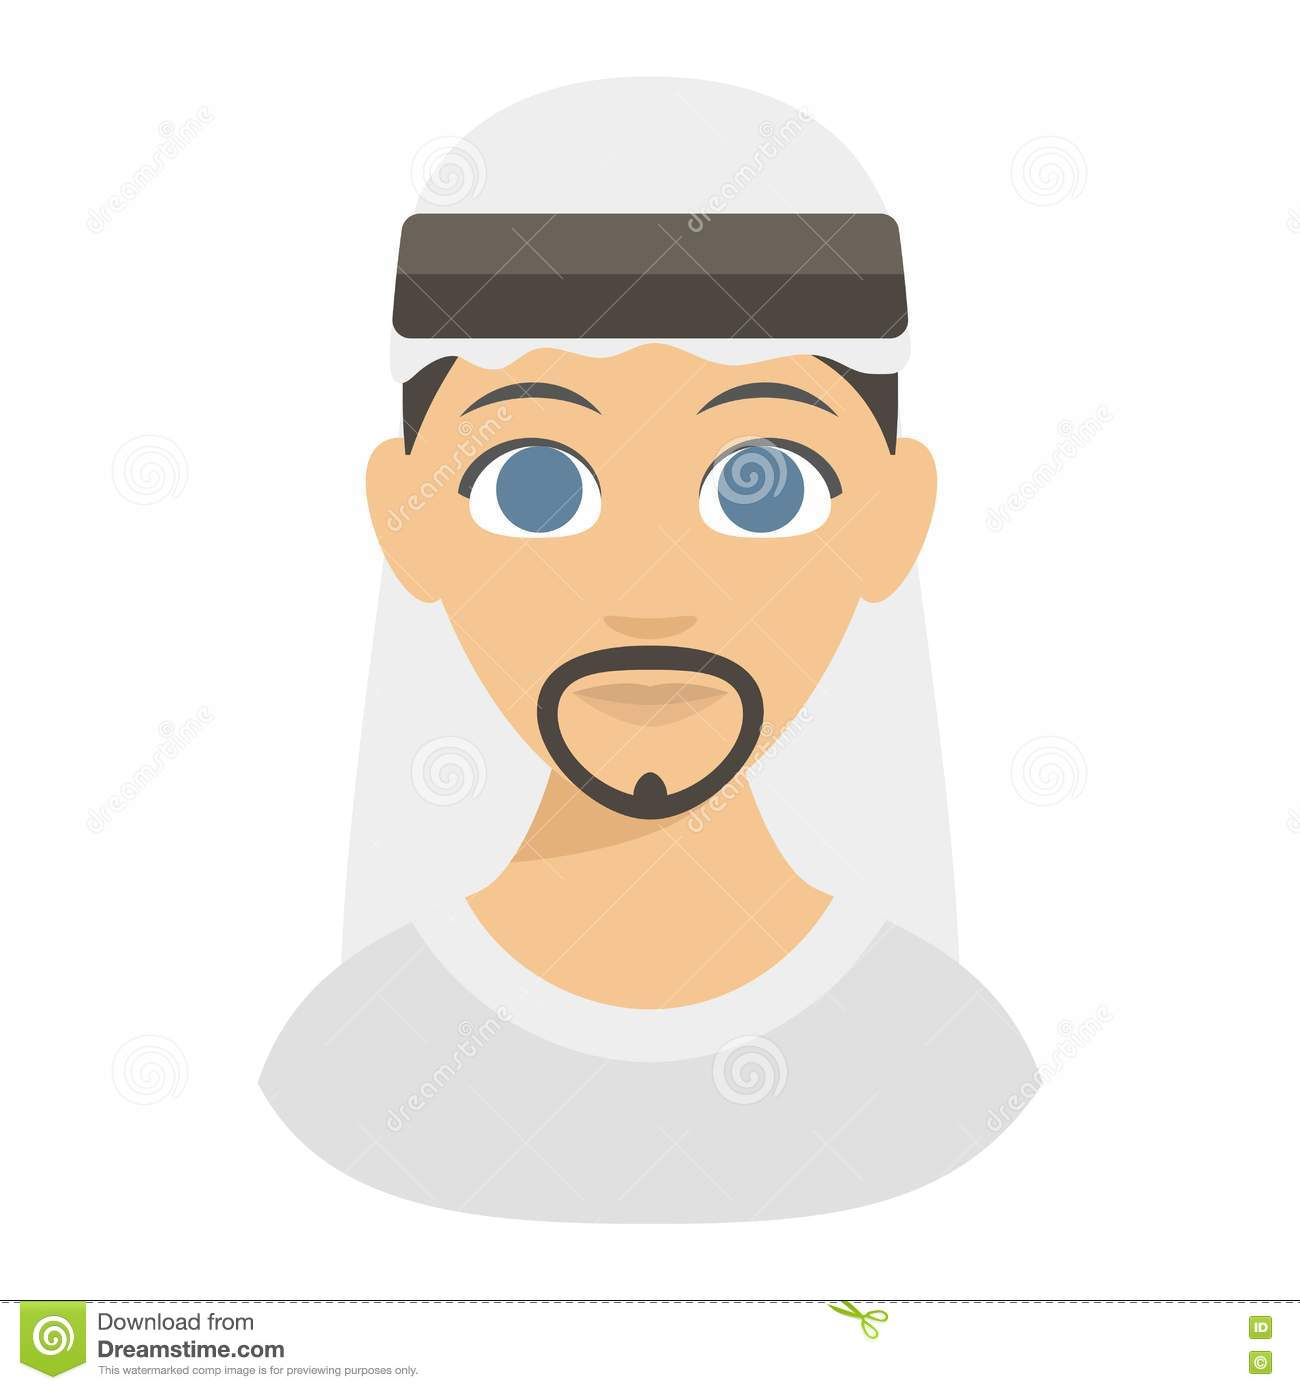 Face for arabic man clipart svg Arabic Man Face Vector Stock Vector - Image: 79943557 svg